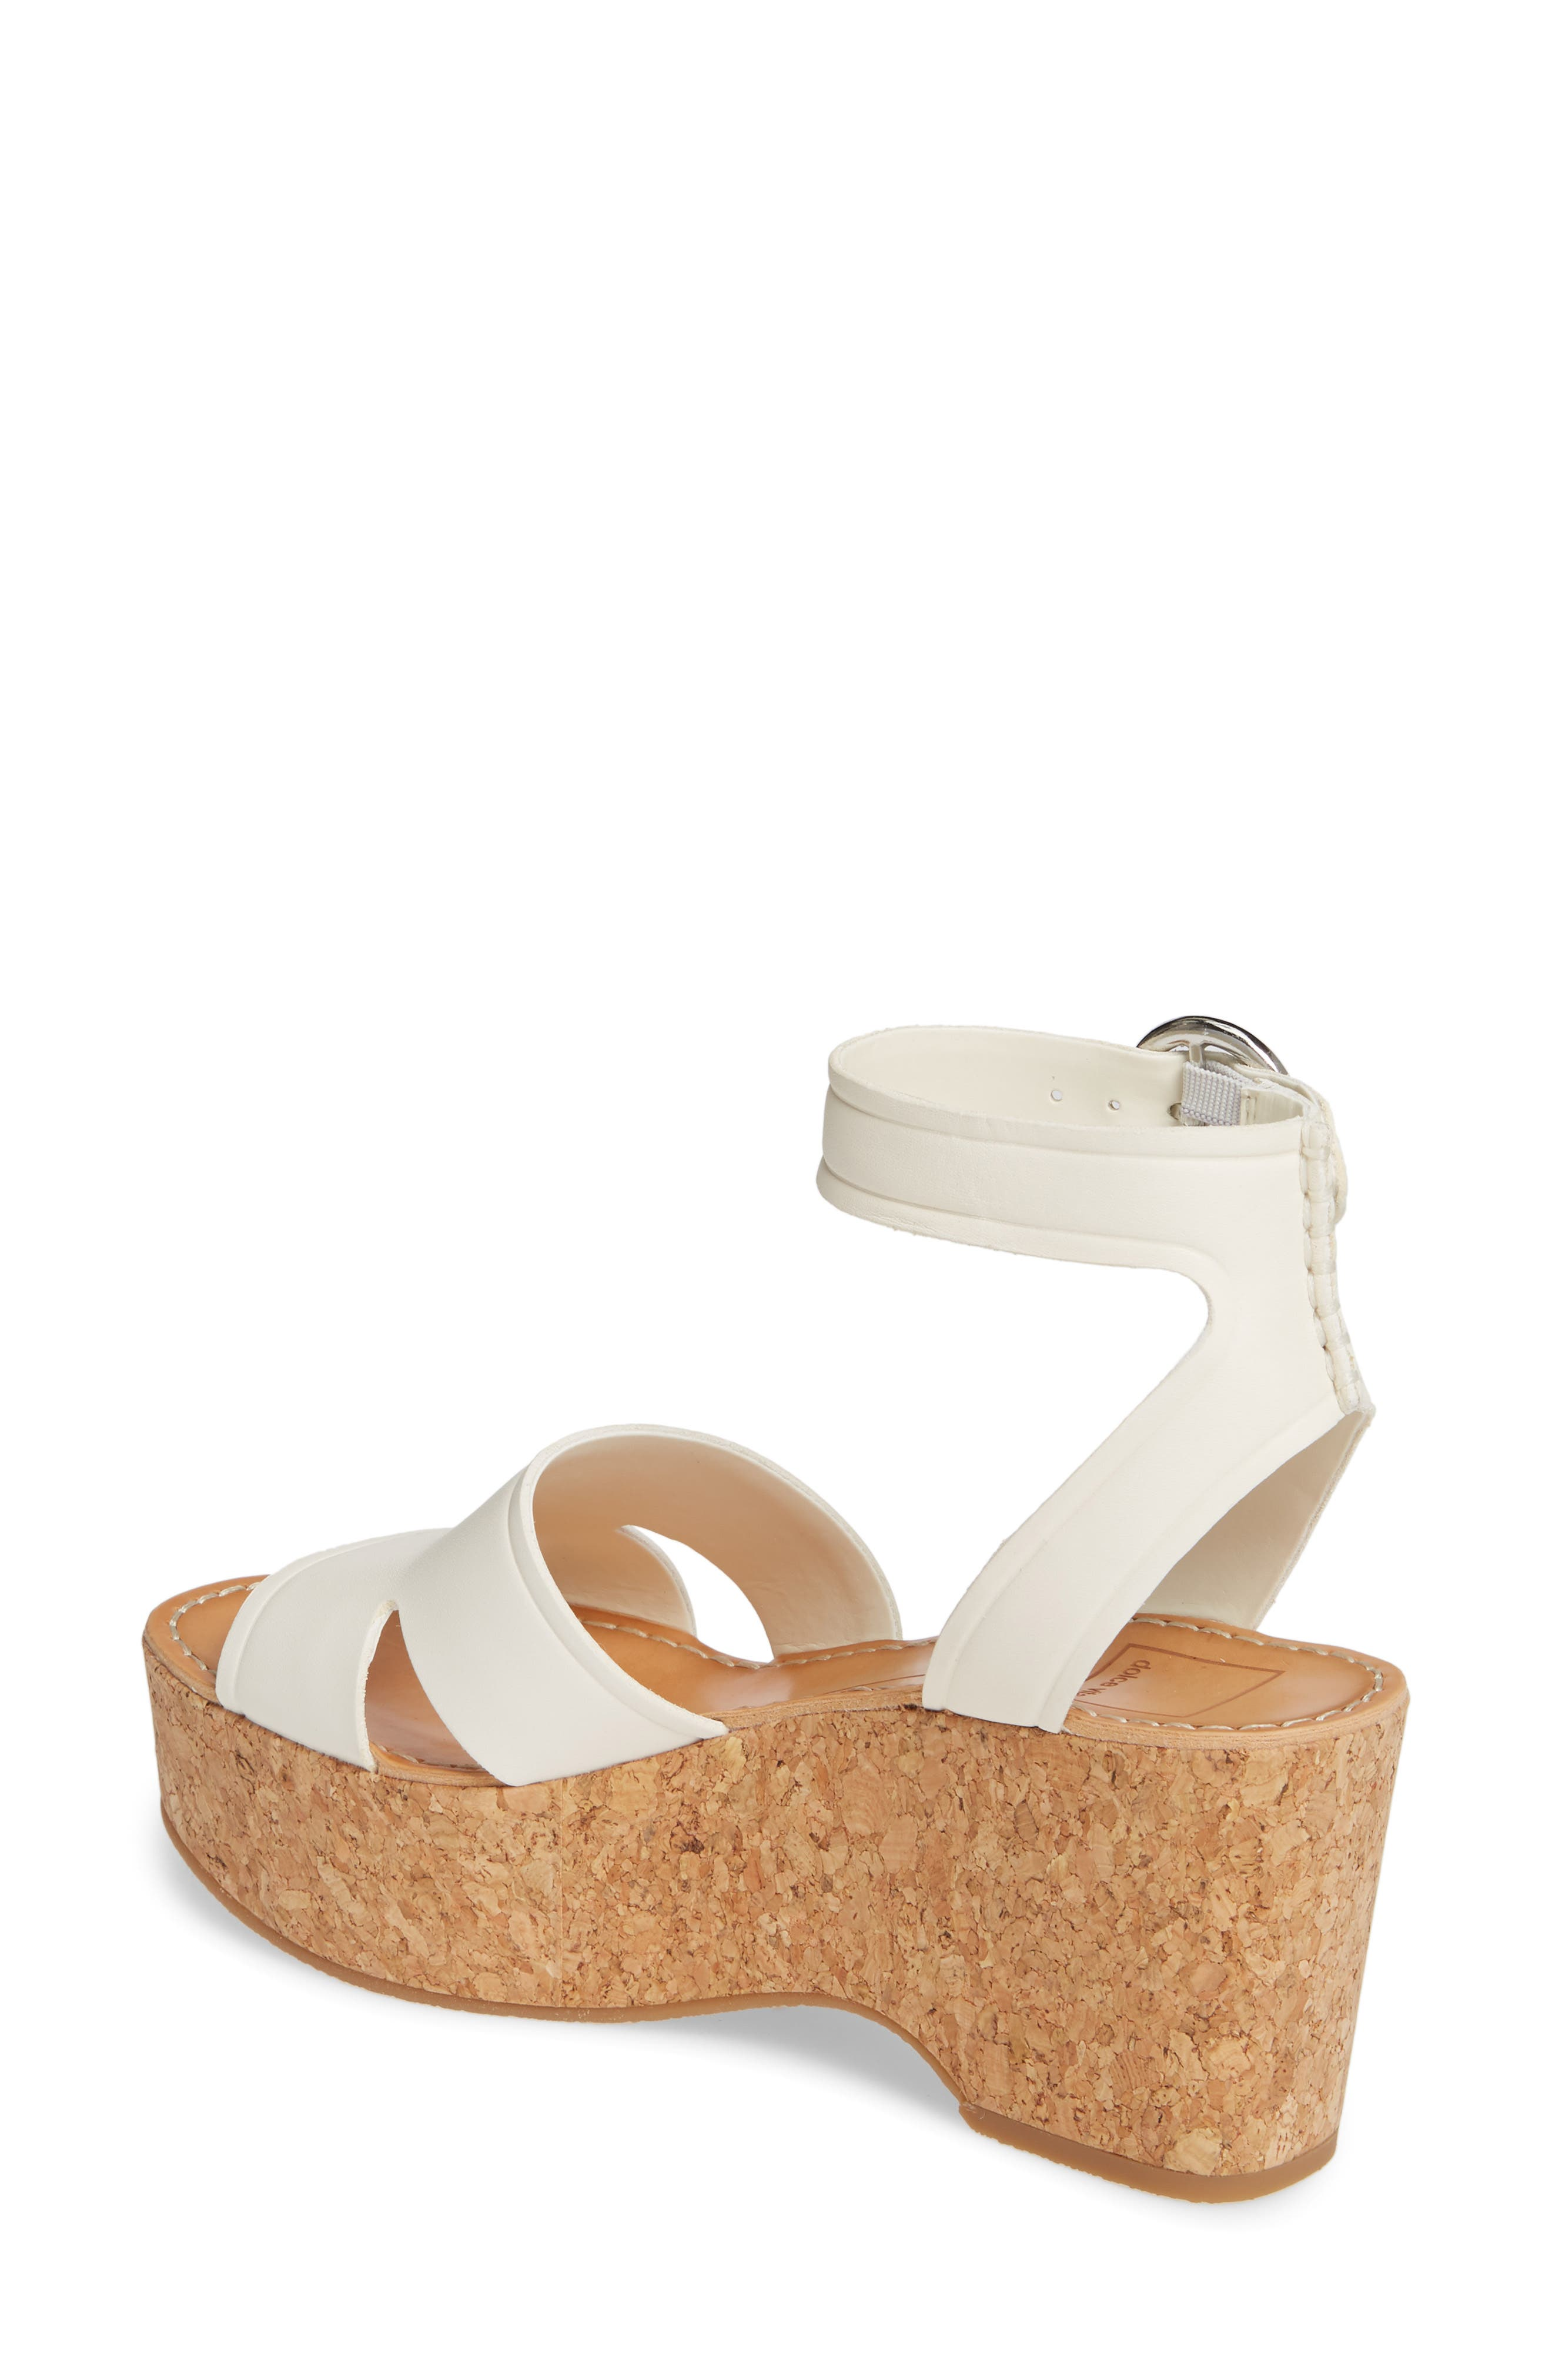 8d0f565a7fcc Dolce Vita Women s Linda Leather   Cork Platform Sandals In Ivory Leather